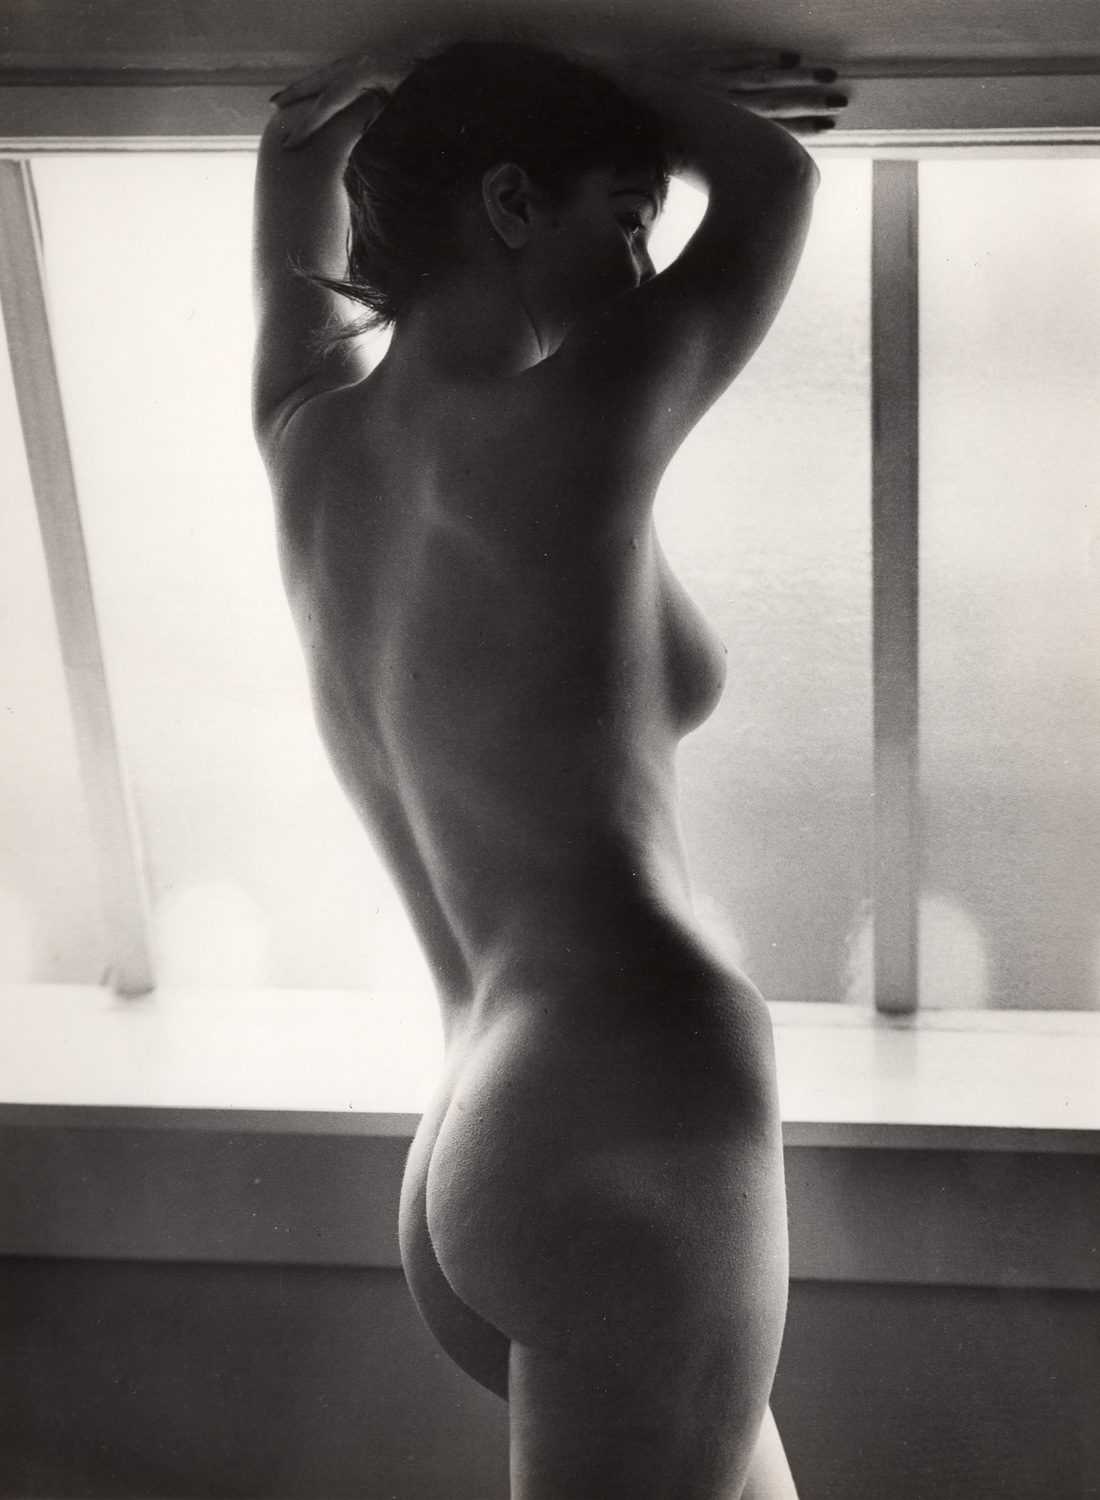 Untitled (Nude standing in the window)